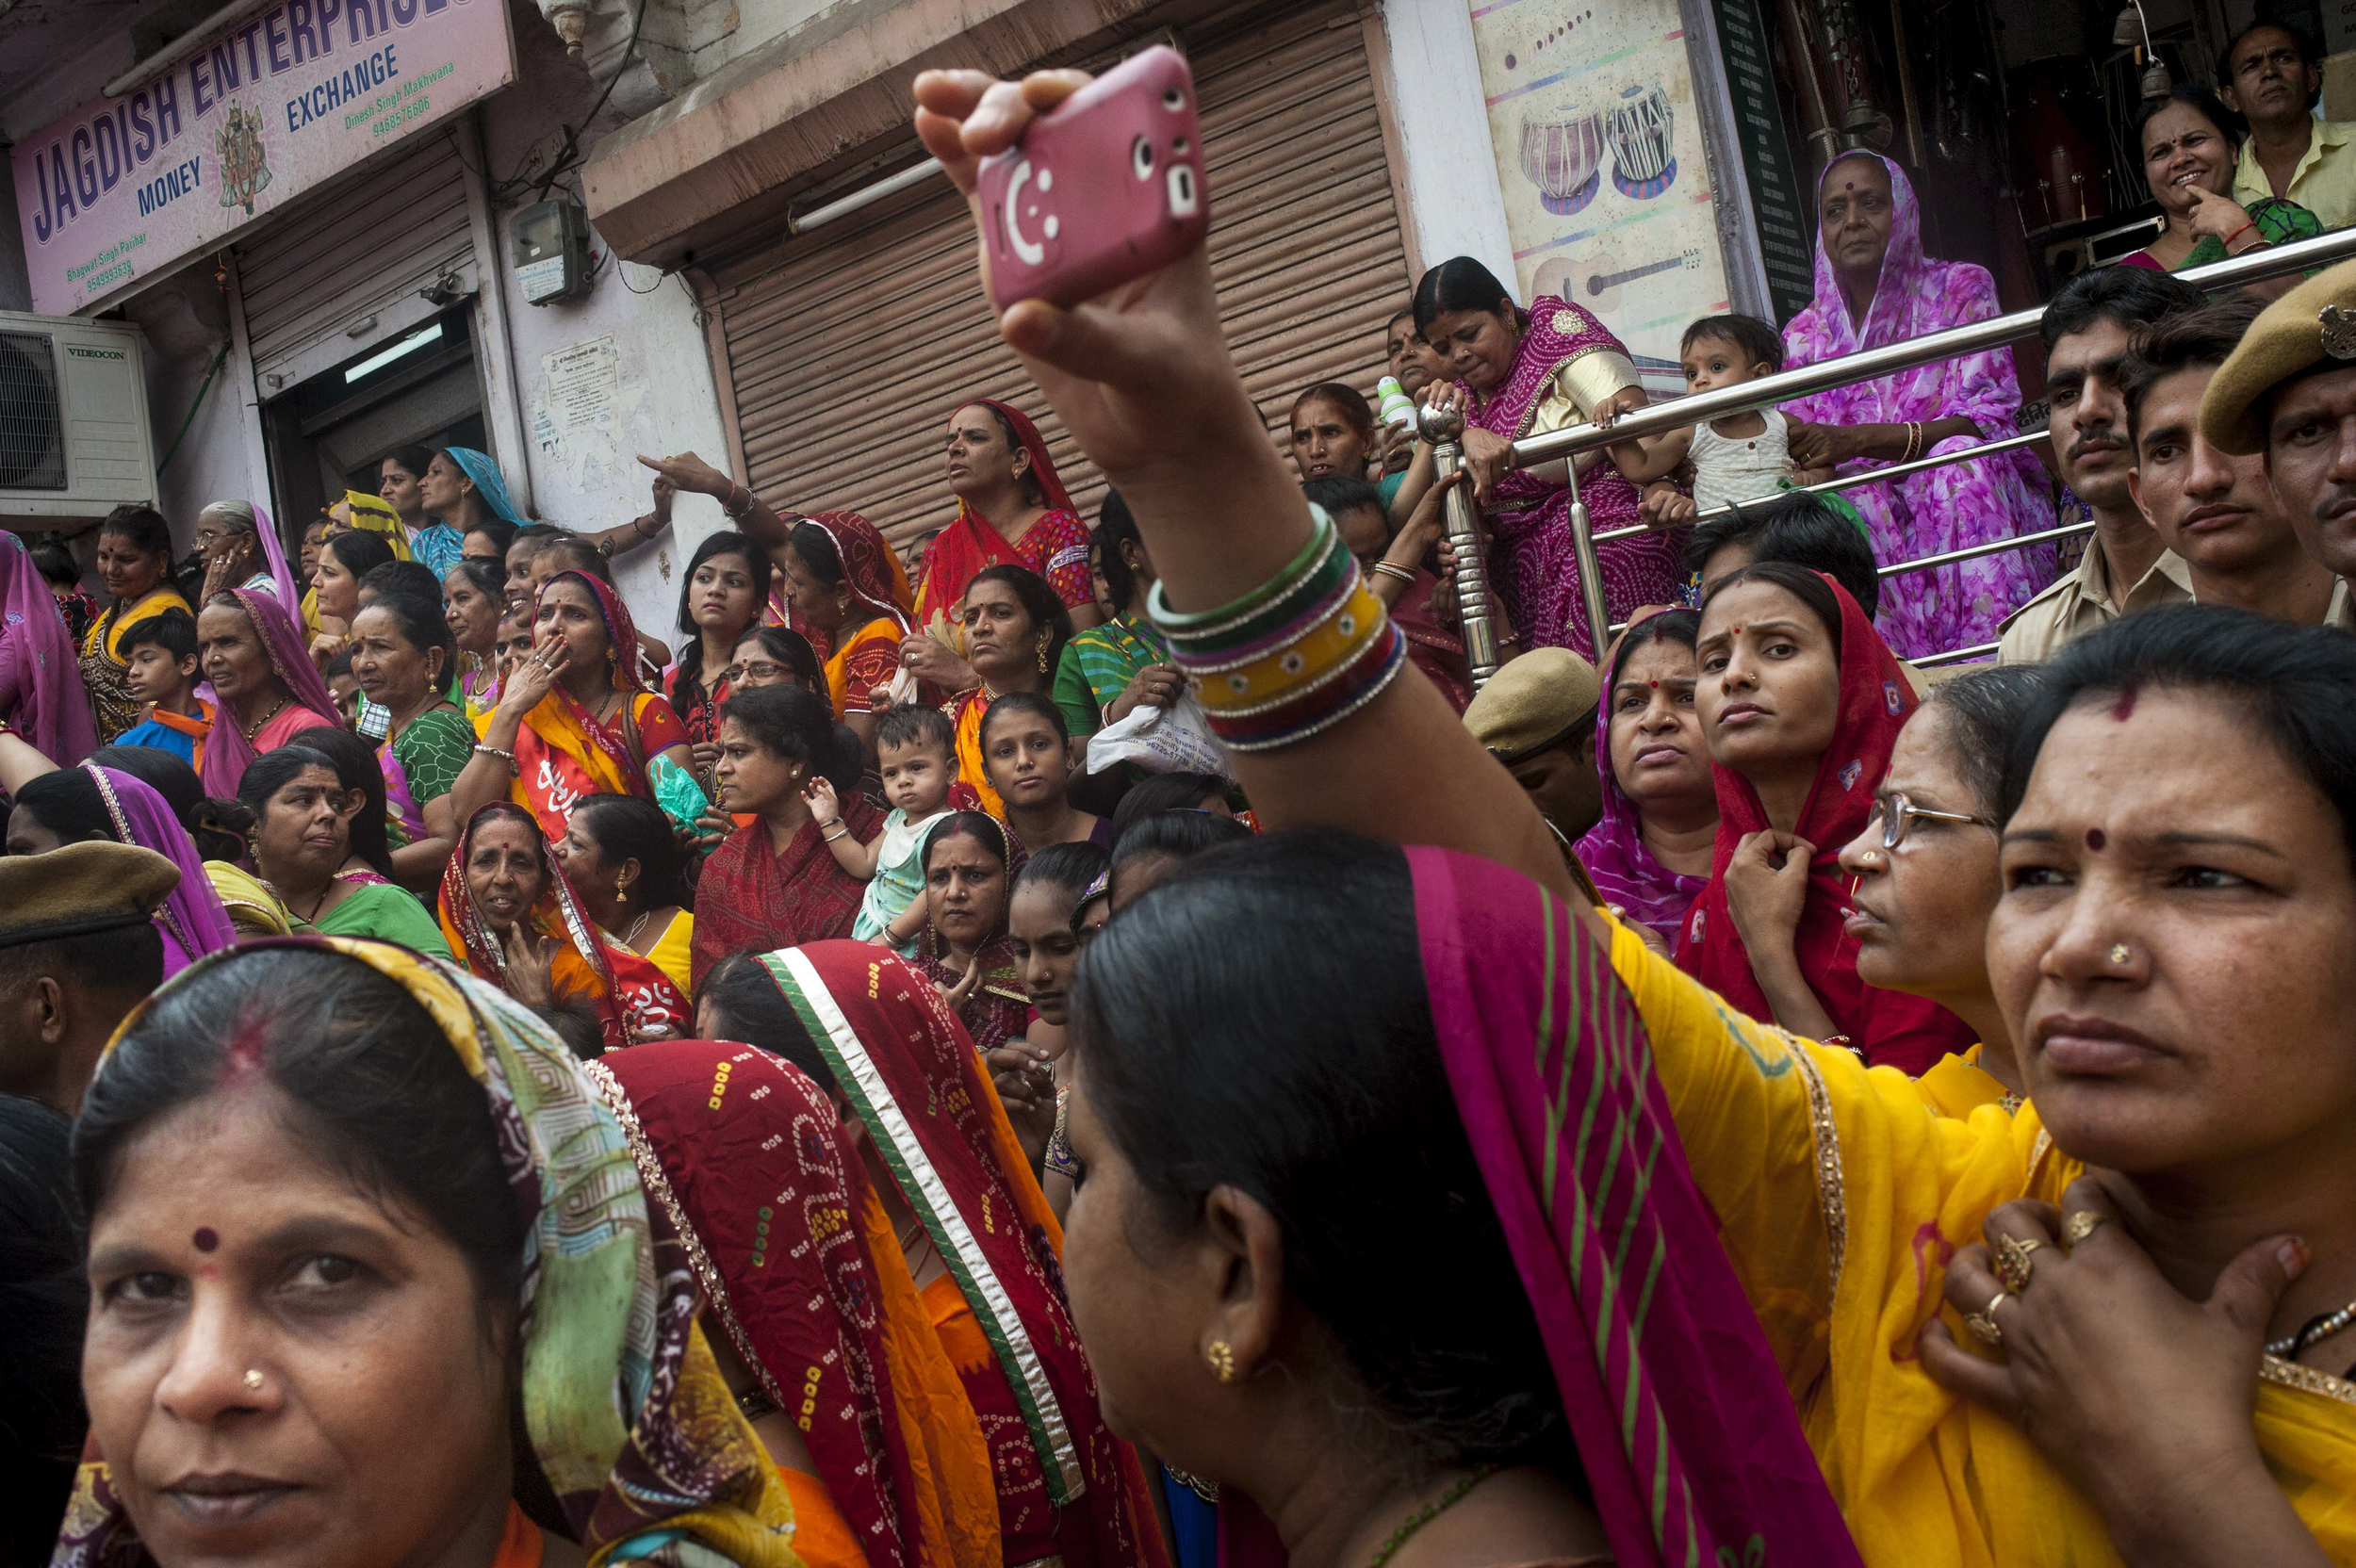 Women gather together in the back of the crowd behind male parade goers to watch the Krishna festival parade in Udaipur on July 17, 2015. Public space, by definition, are areas designated to be accessible to all individuals. However, separation of gender in space is seen throughout a historically patriarchal urban and rural Northern India, forcing women to seek out and create space for future generations of Indian women.